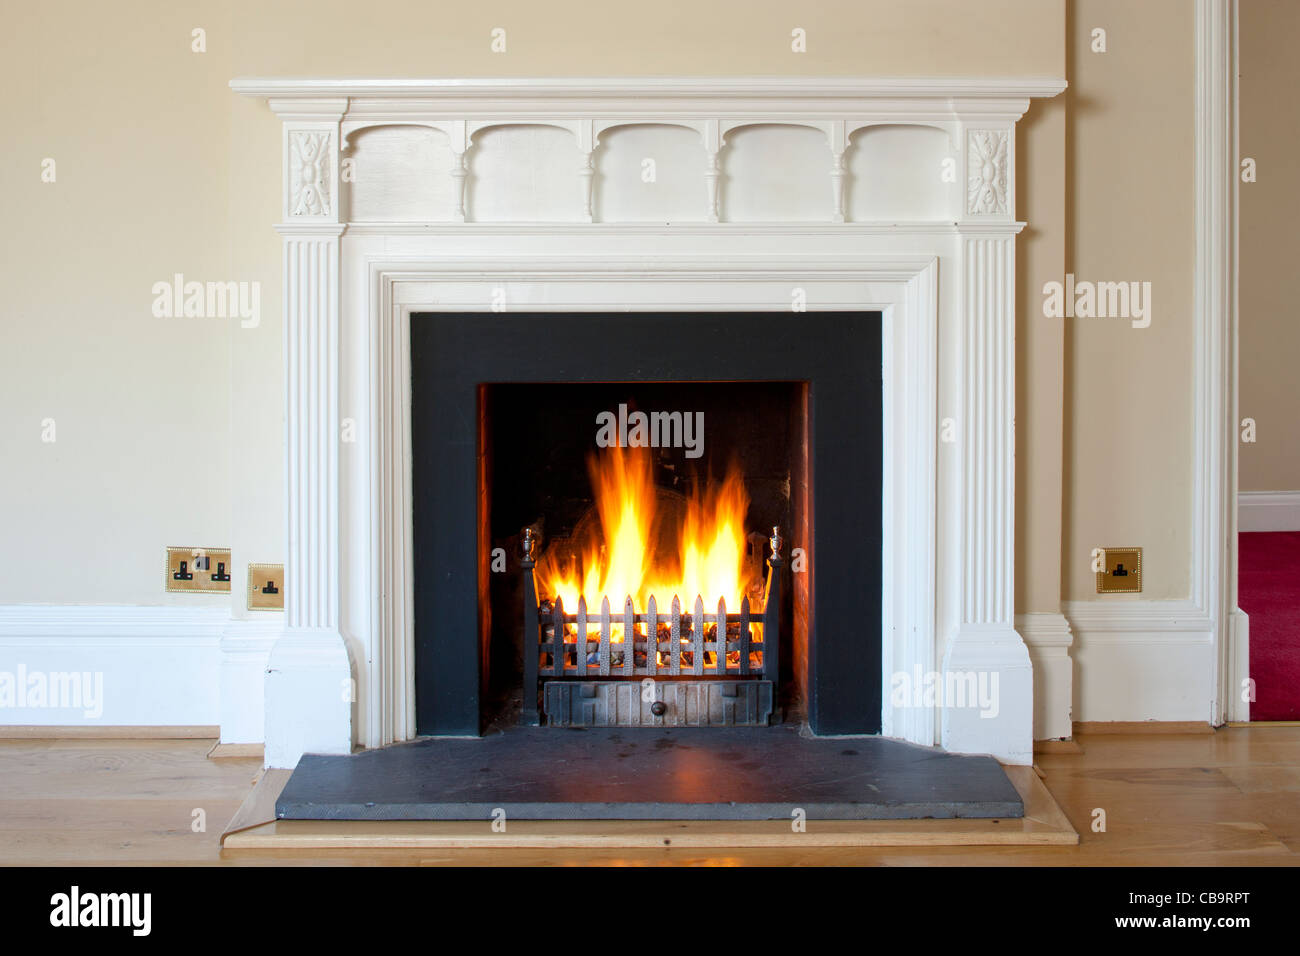 Classical fireplace with burning fire - Stock Image